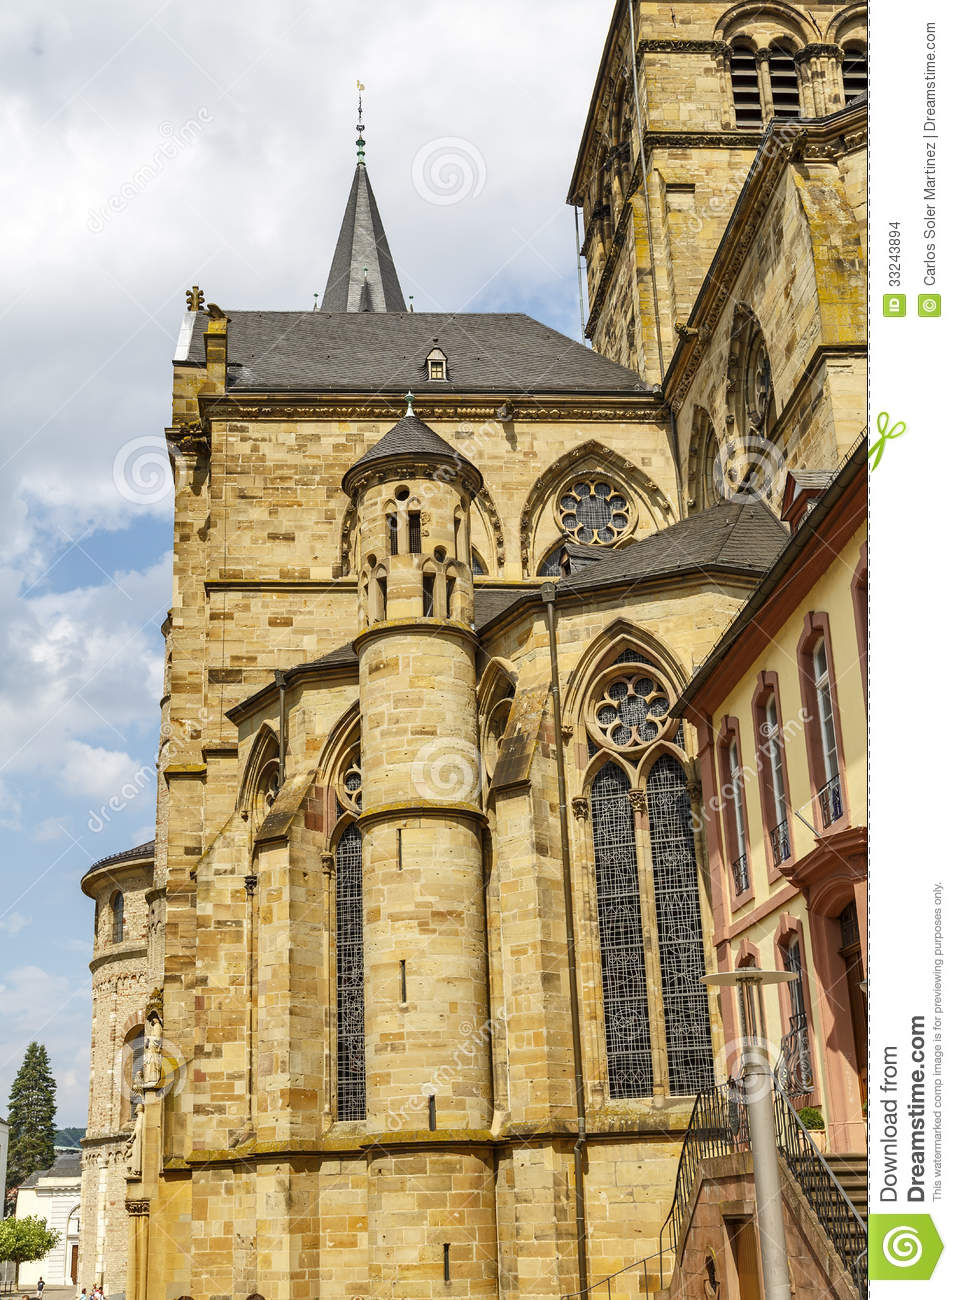 Trier Cathedral - the oldest church in Germany